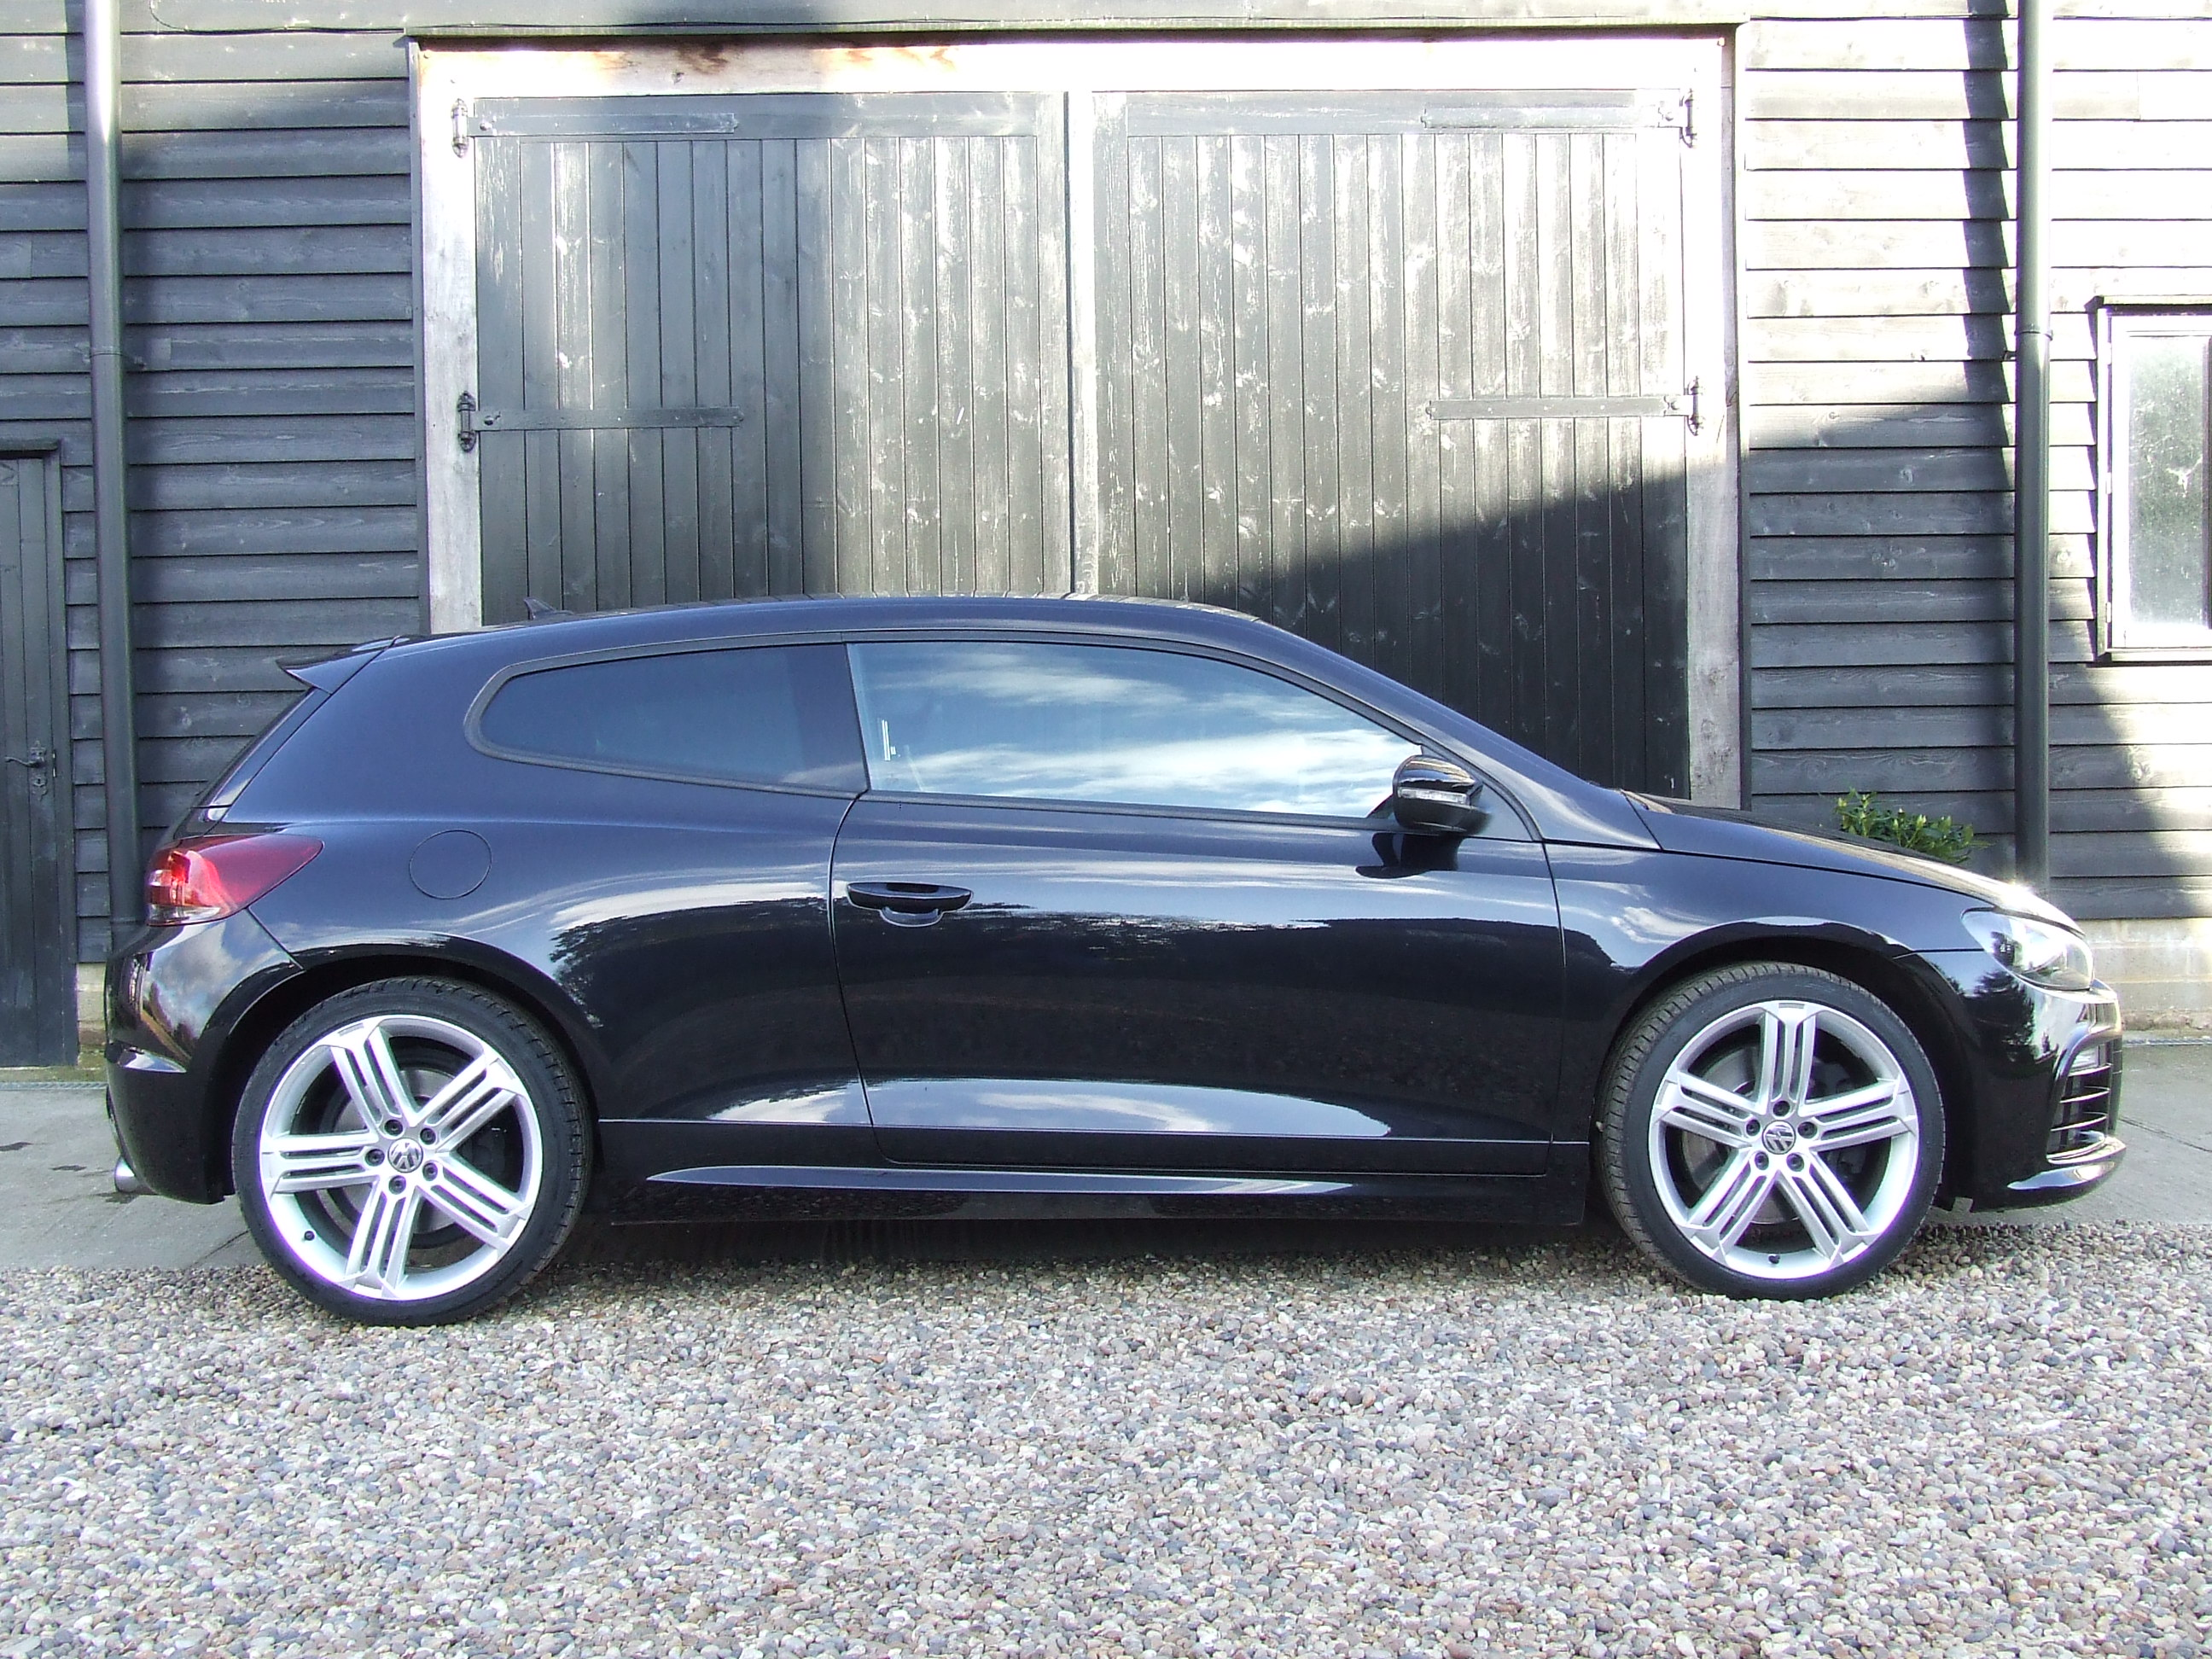 volkswagen scirocco 2 0 tsi r oliver cars ltd. Black Bedroom Furniture Sets. Home Design Ideas